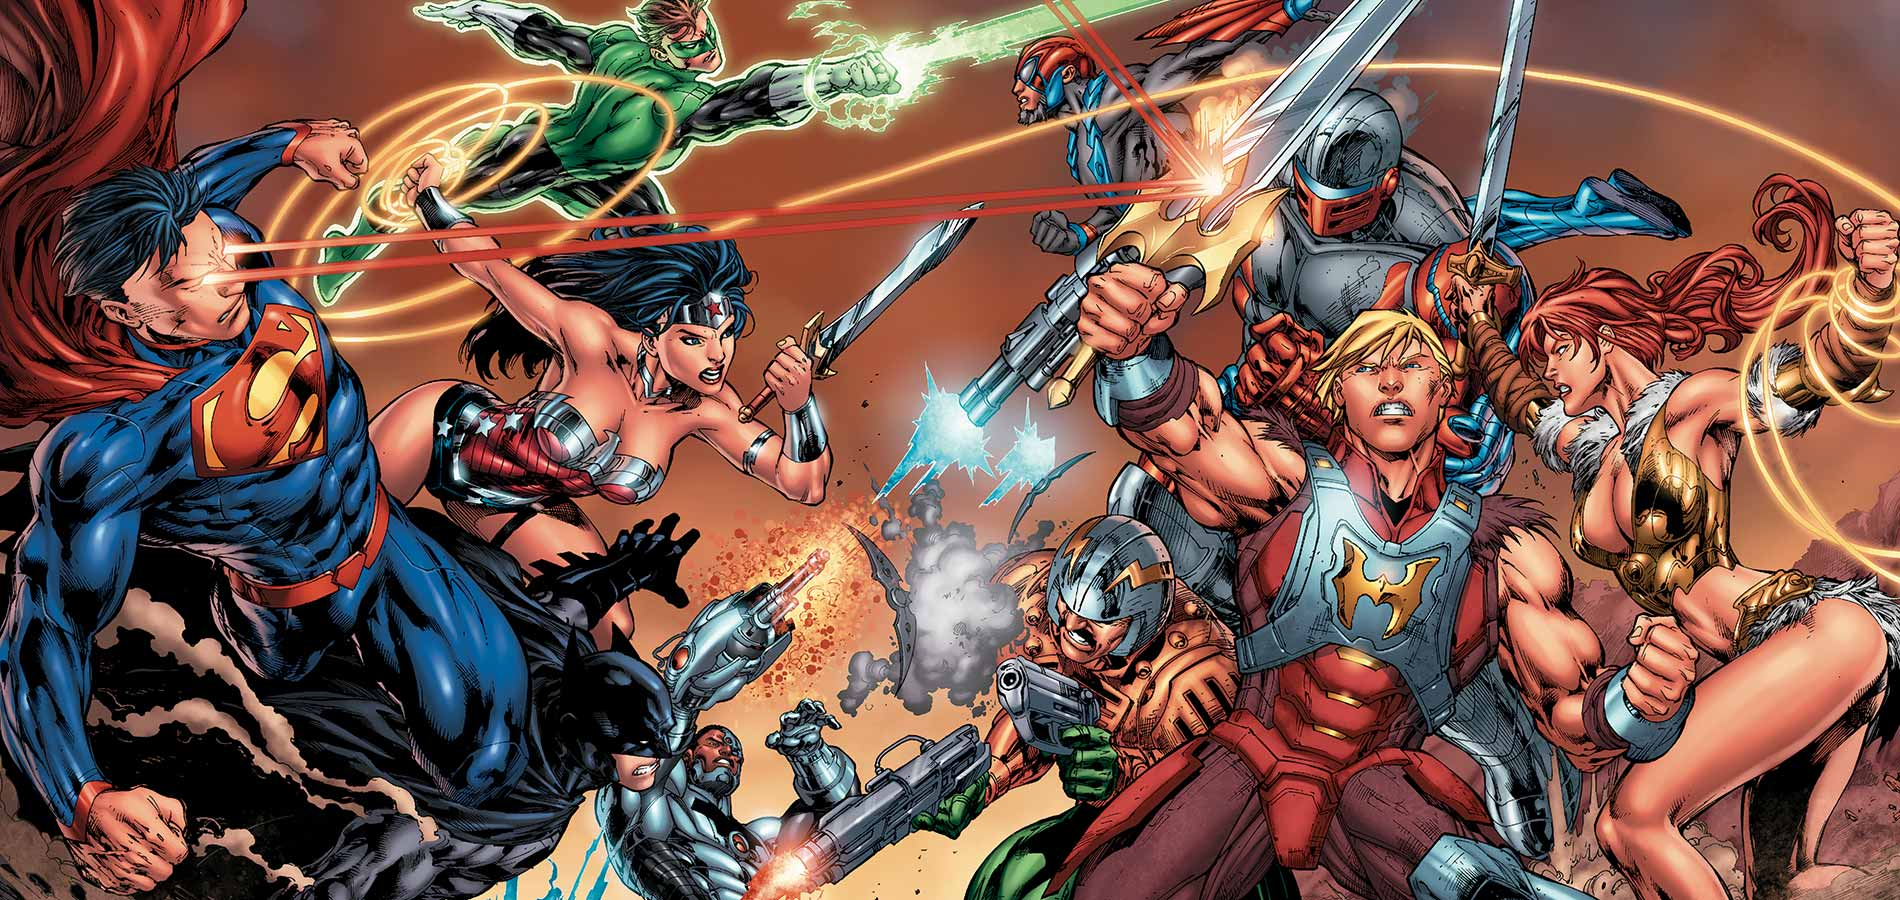 DC Comics reports a 35% increase in readership via DC Universe